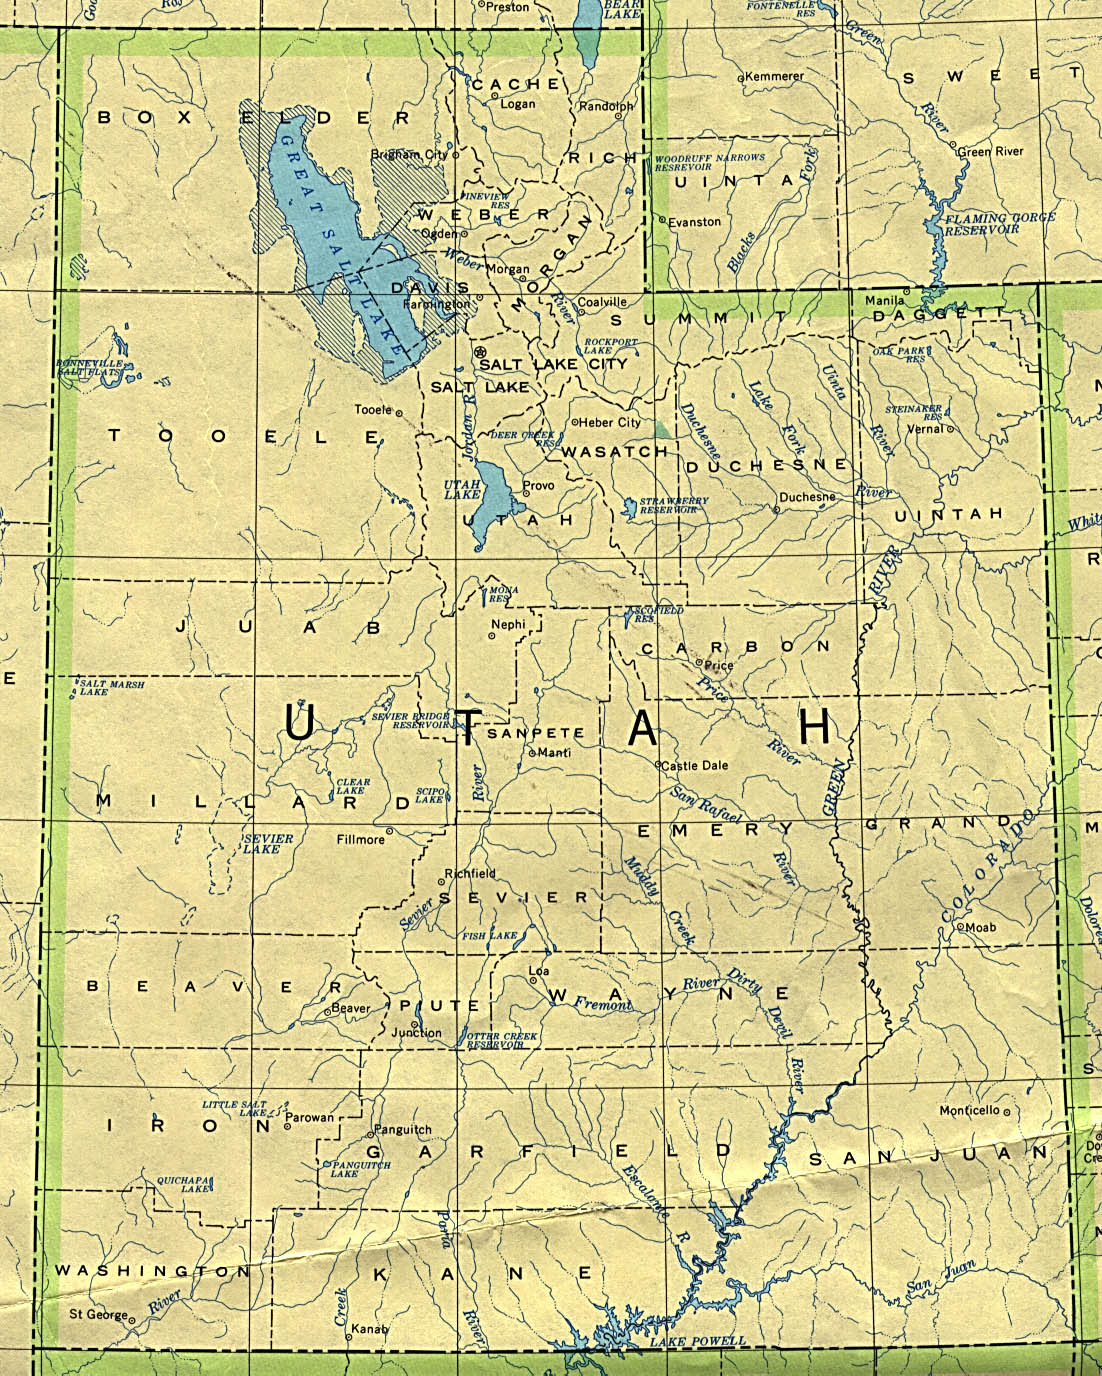 File:Utah counties & cities.jpg - Wikimedia Commons